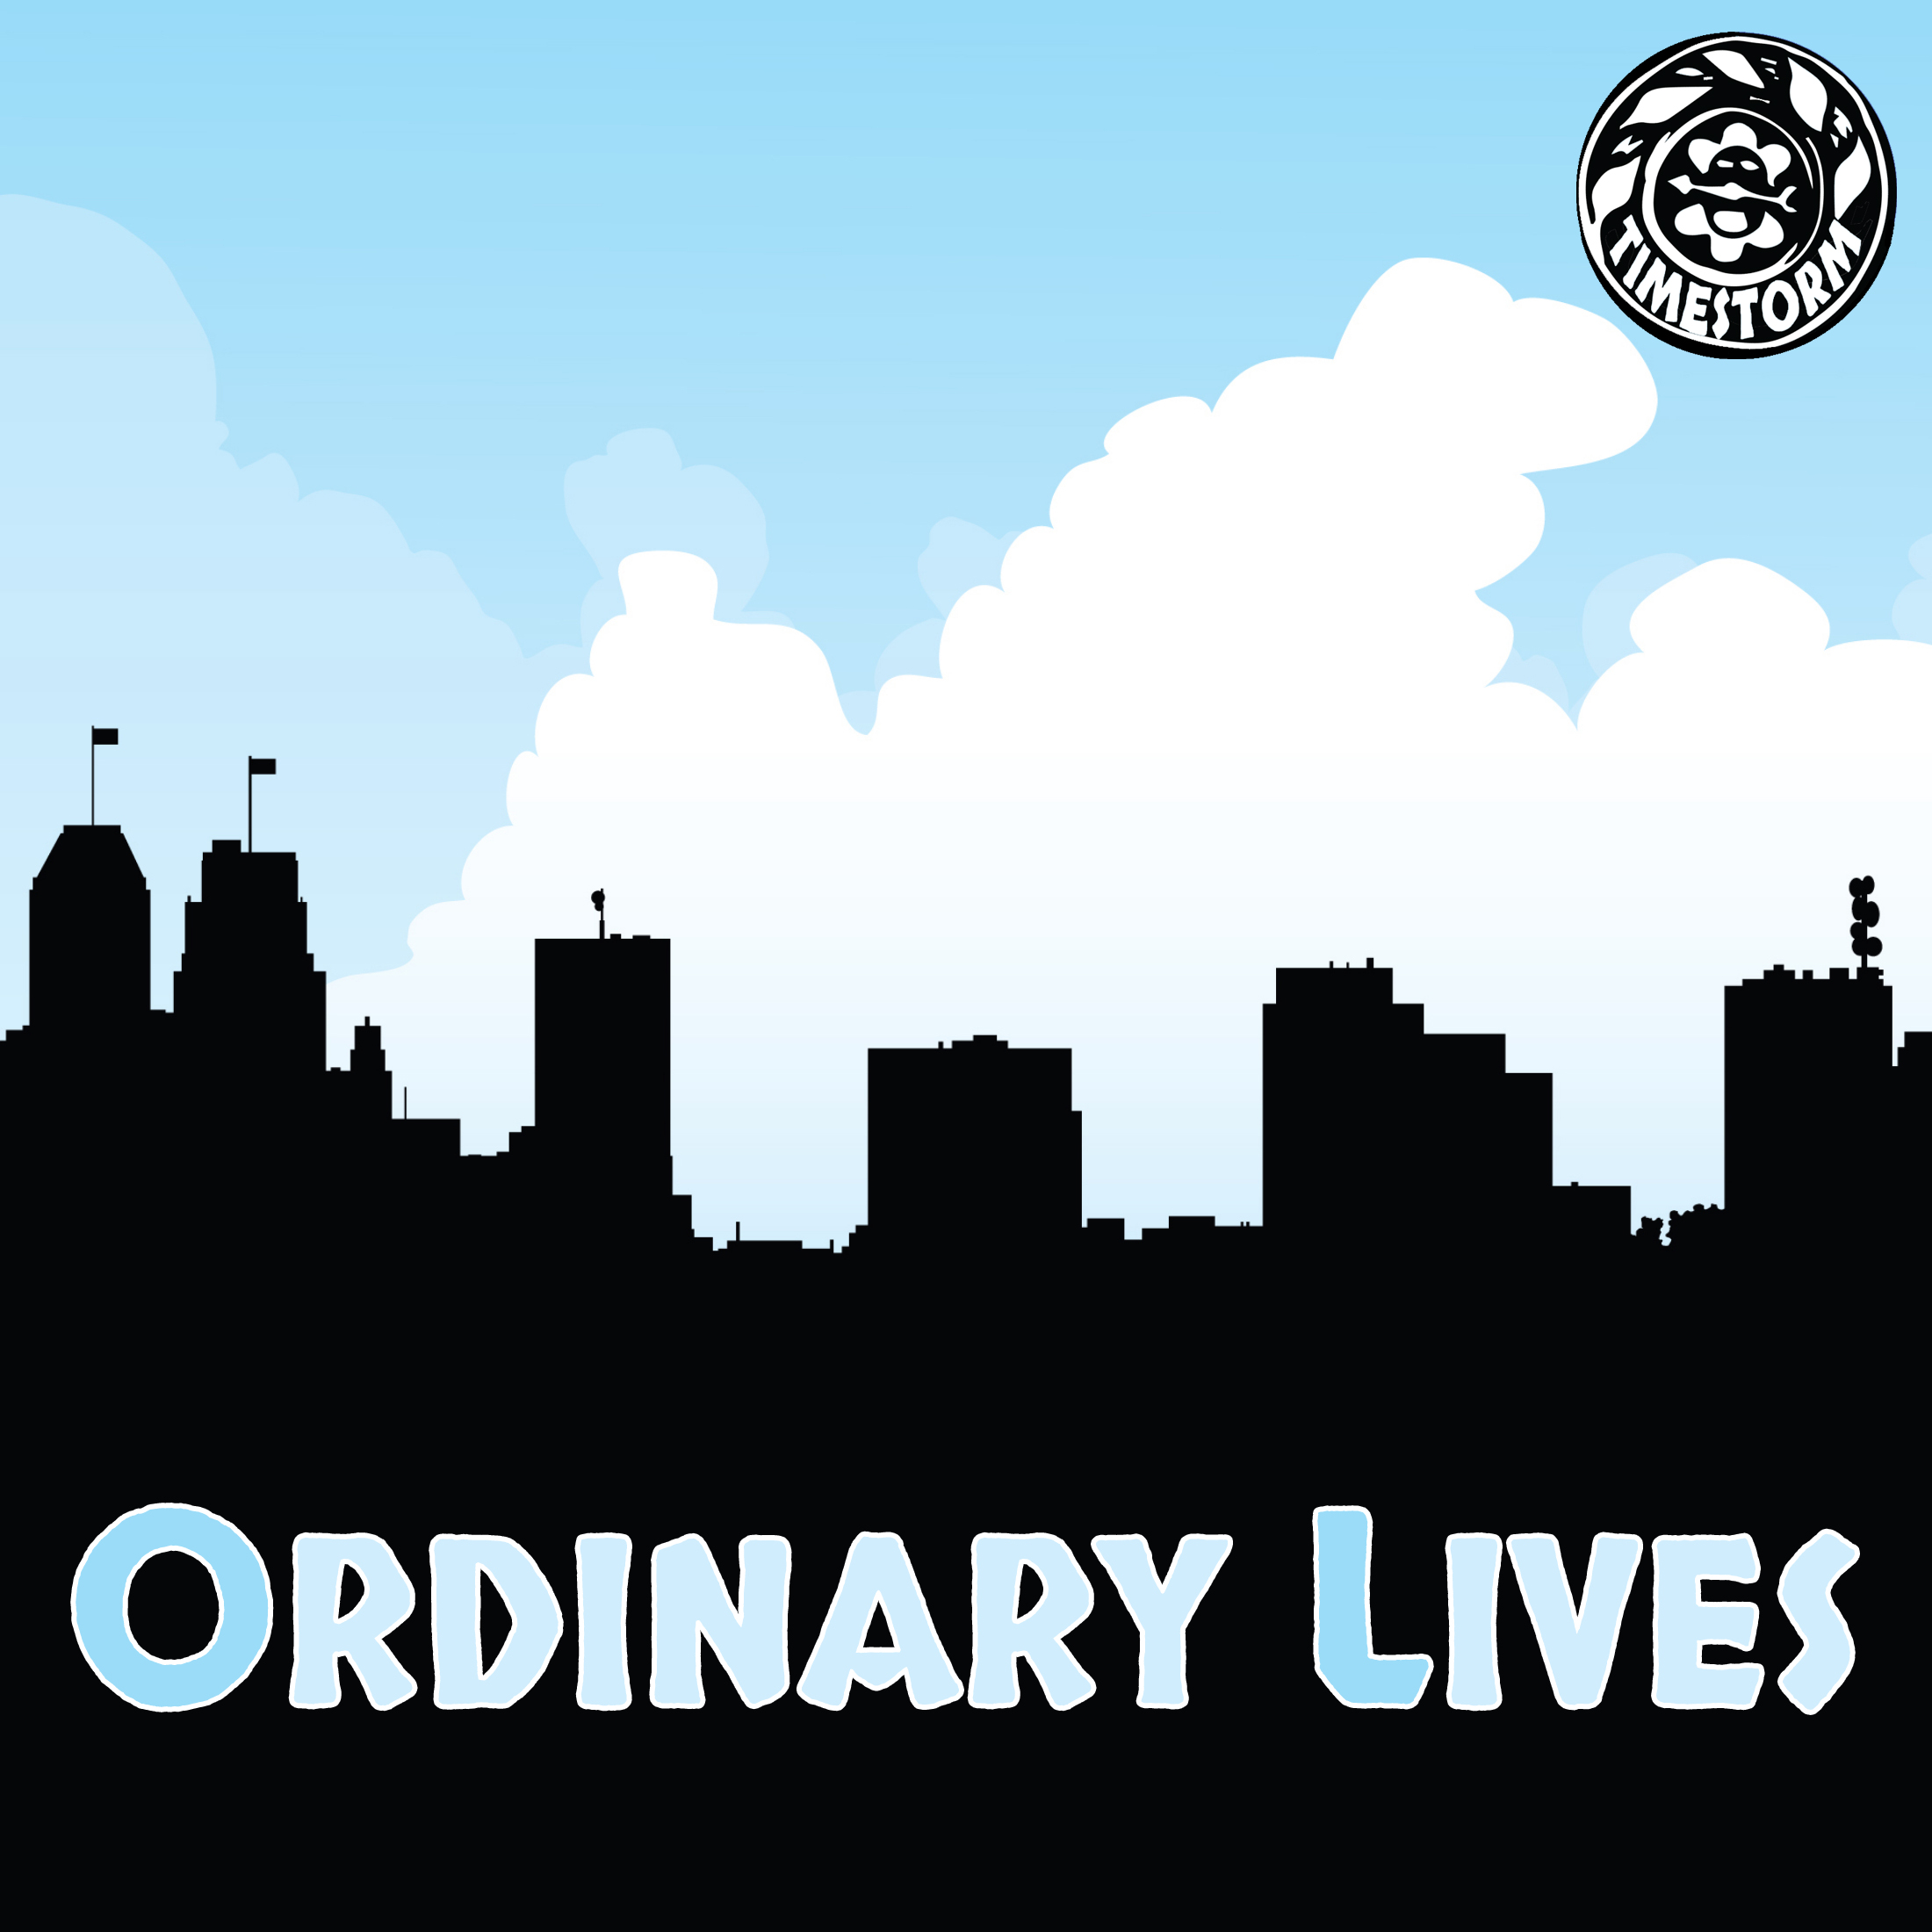 Episode 6: Ordinary Lives